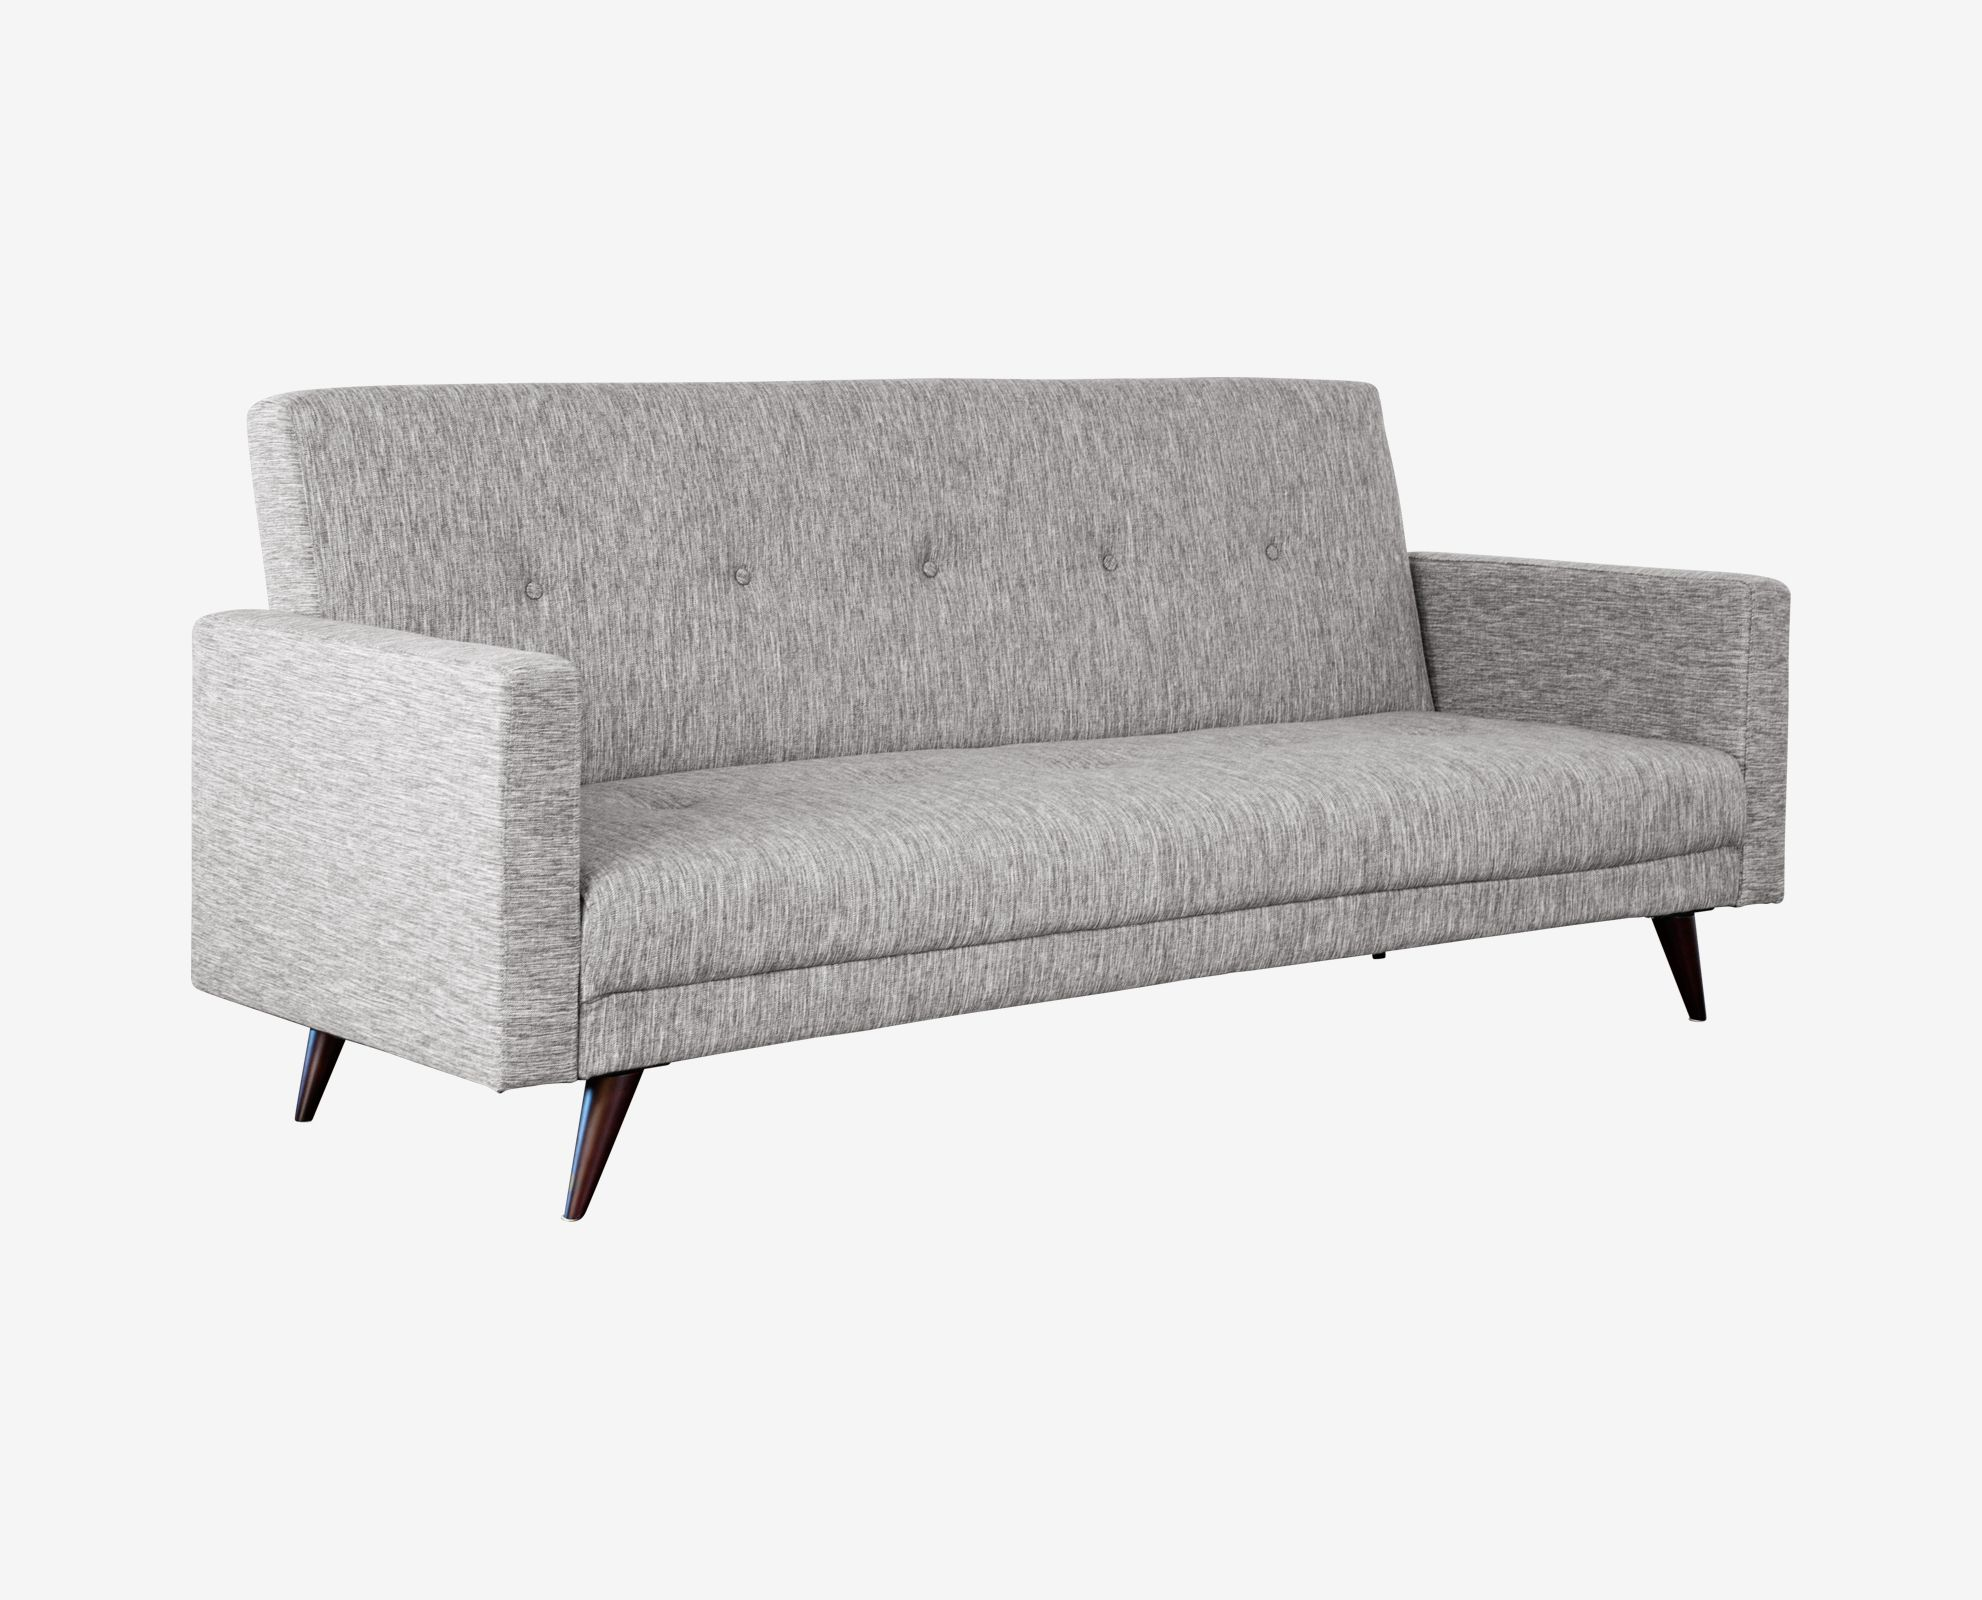 Scandinavian Designs The Leconi Futon With Arms Will Transform Any Room In Your Home From A Stylish Seating Area To A Co Modern Couch Modern Scandinavian Interior Daybed Couch